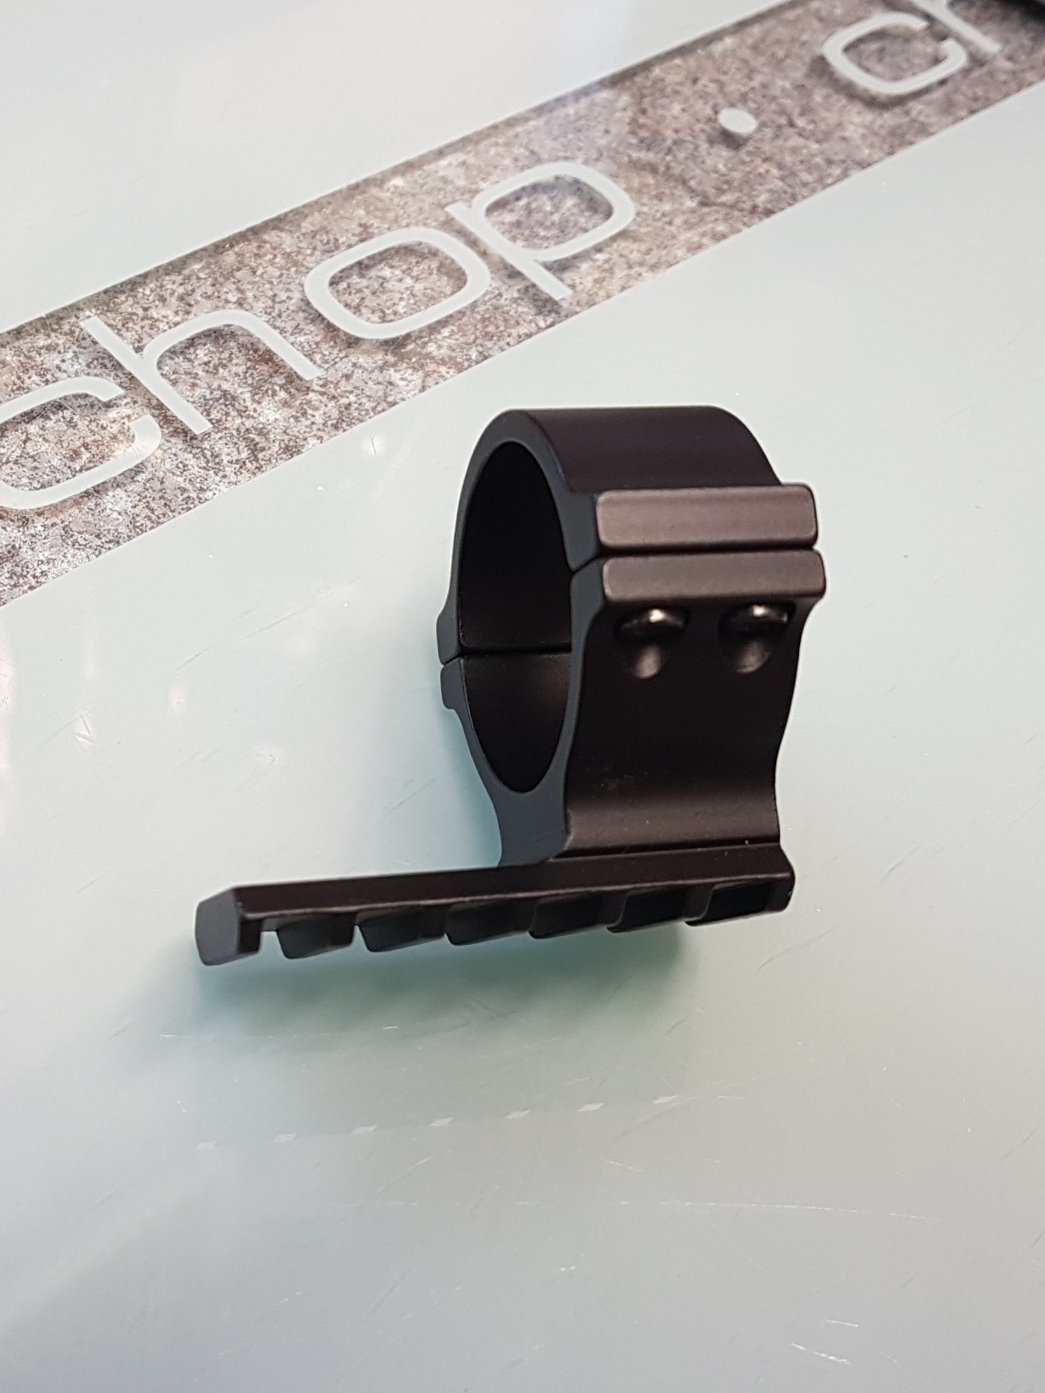 Scope mount or ring